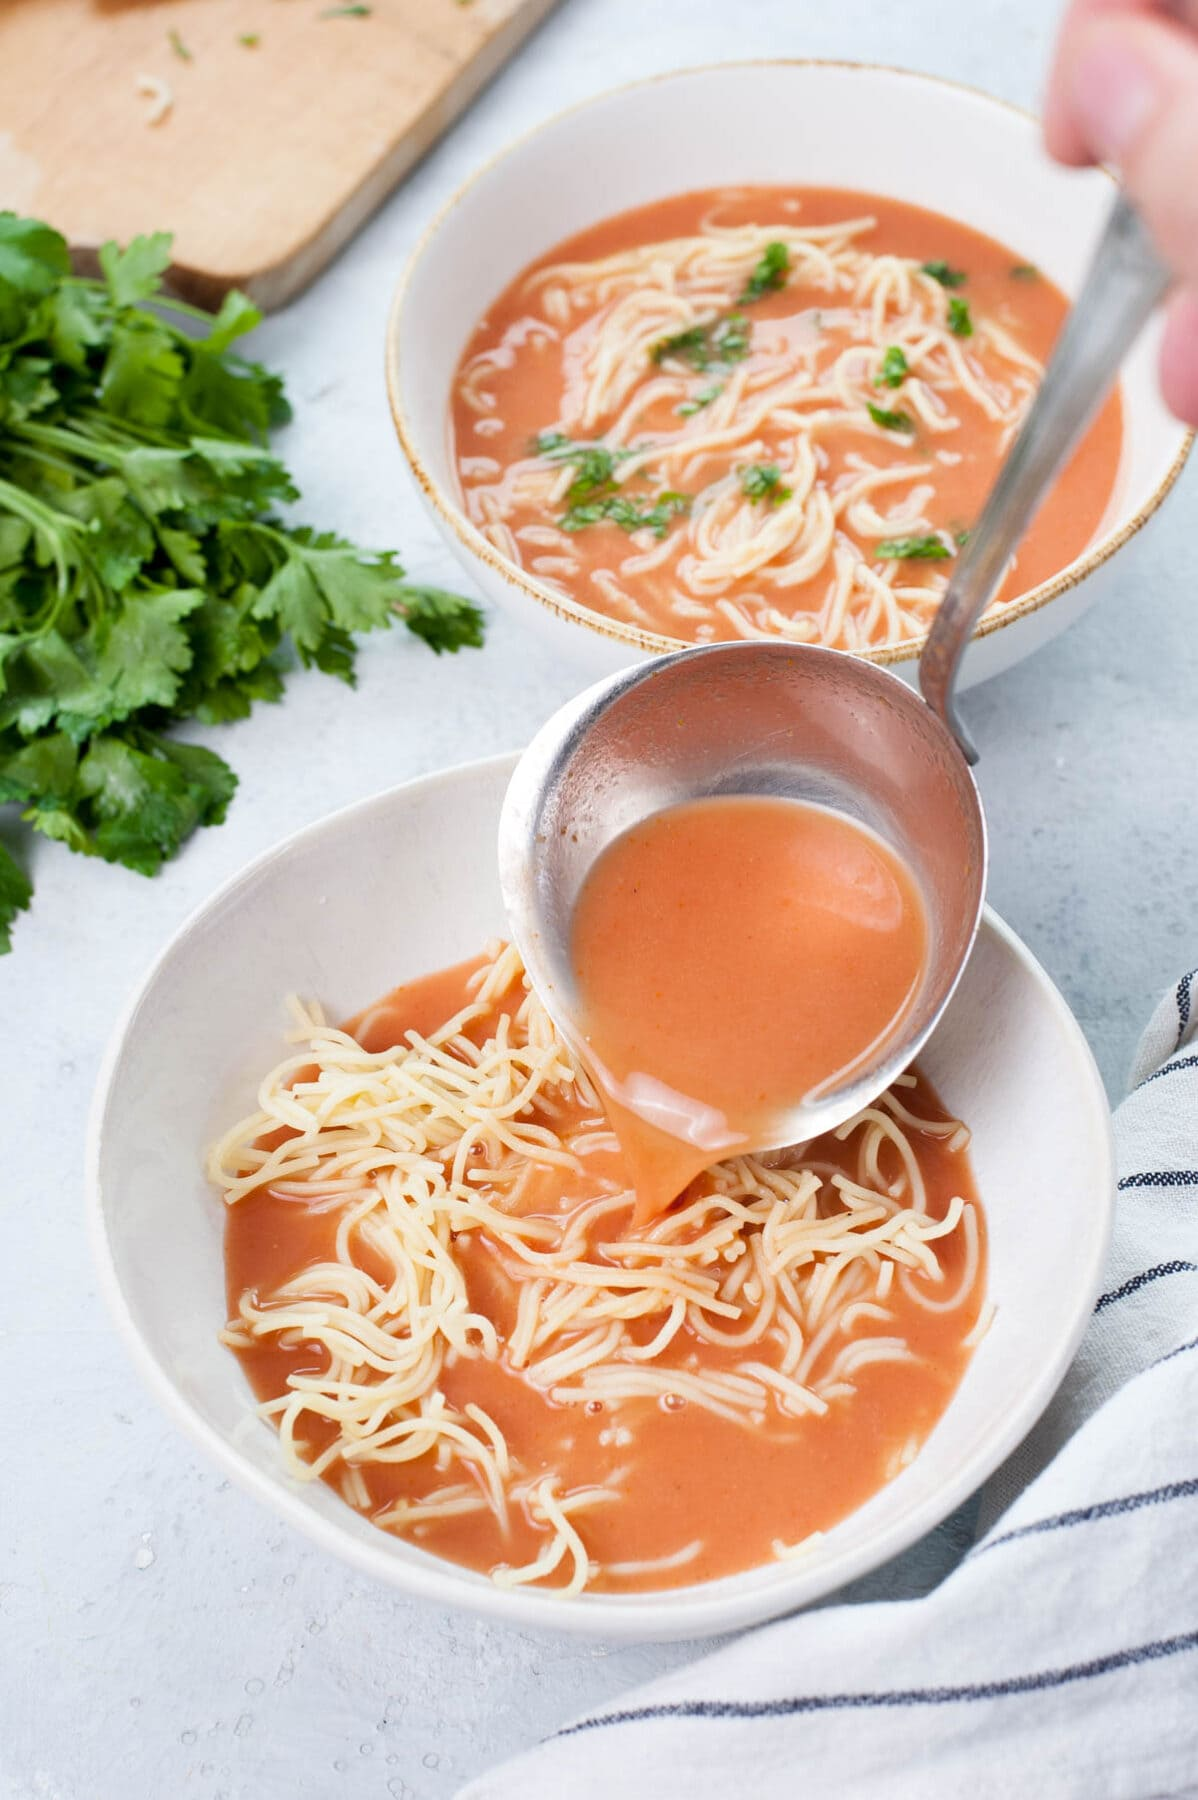 Tomato soup is being poured into a plate with cooked noodles.